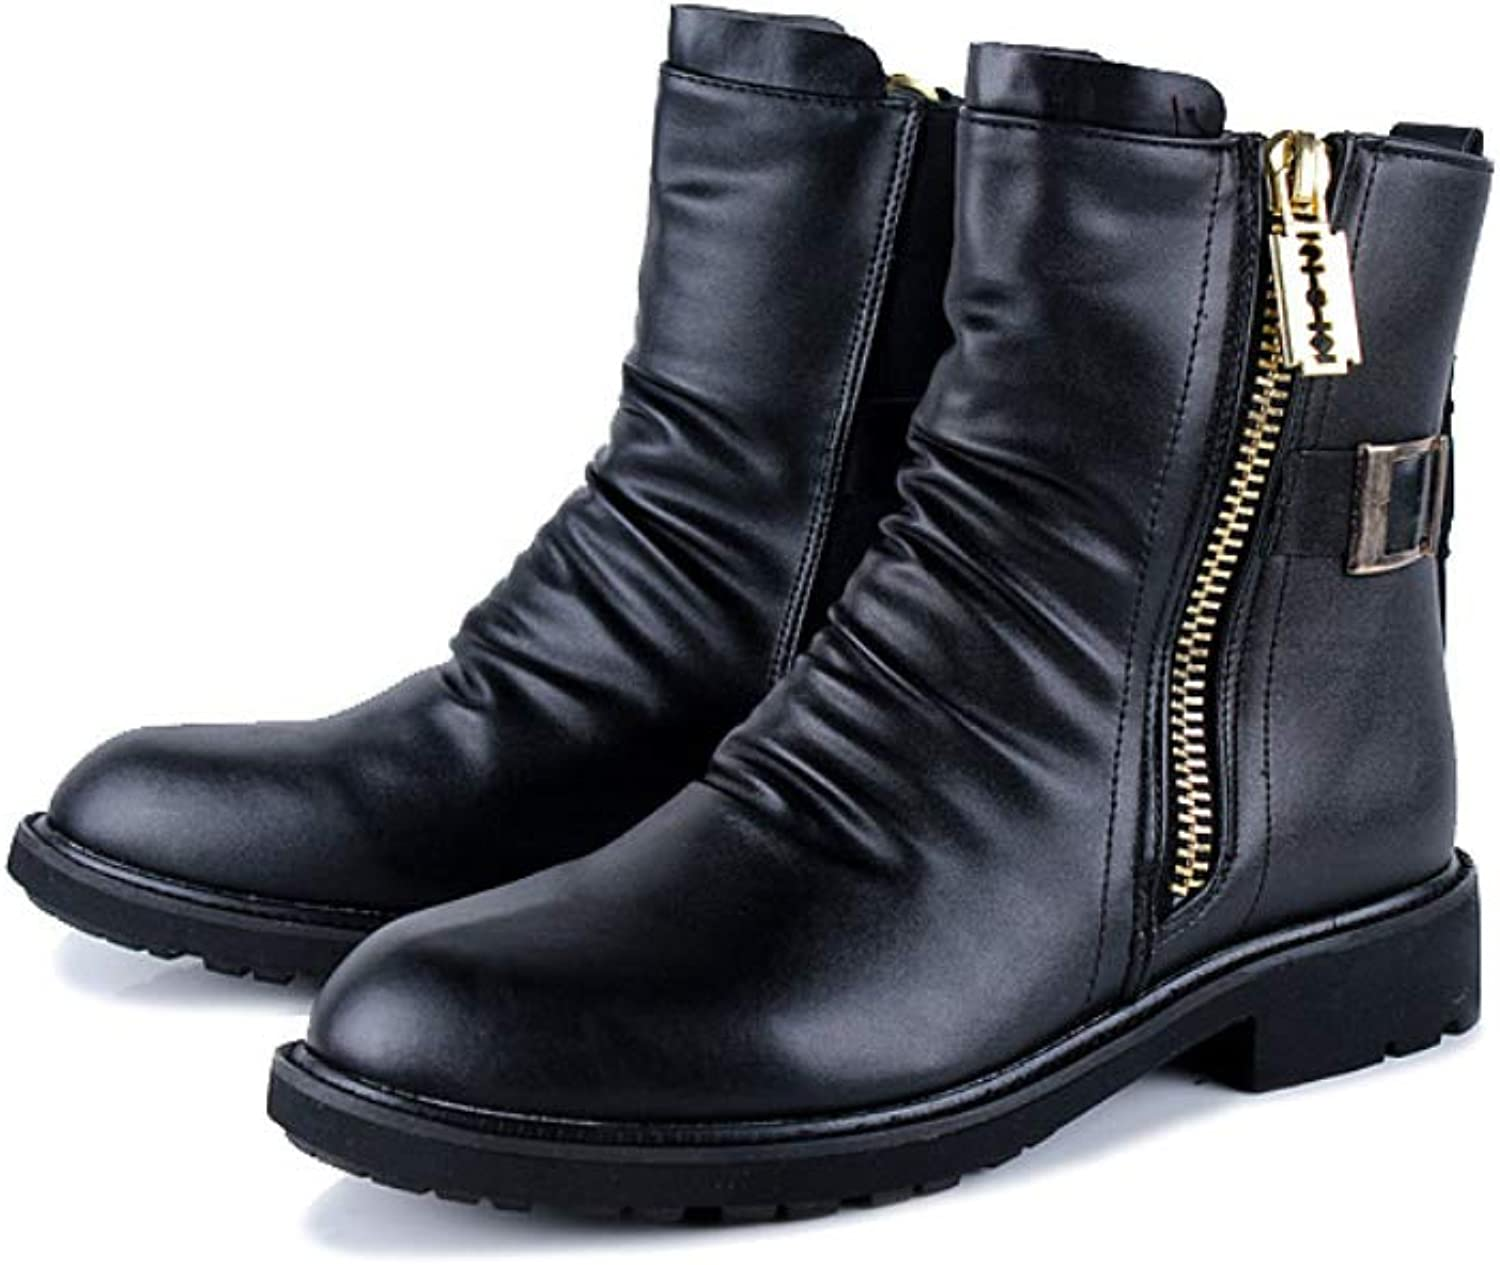 shoes House Men's Booties Waterproof Non-Slip Casual Boots